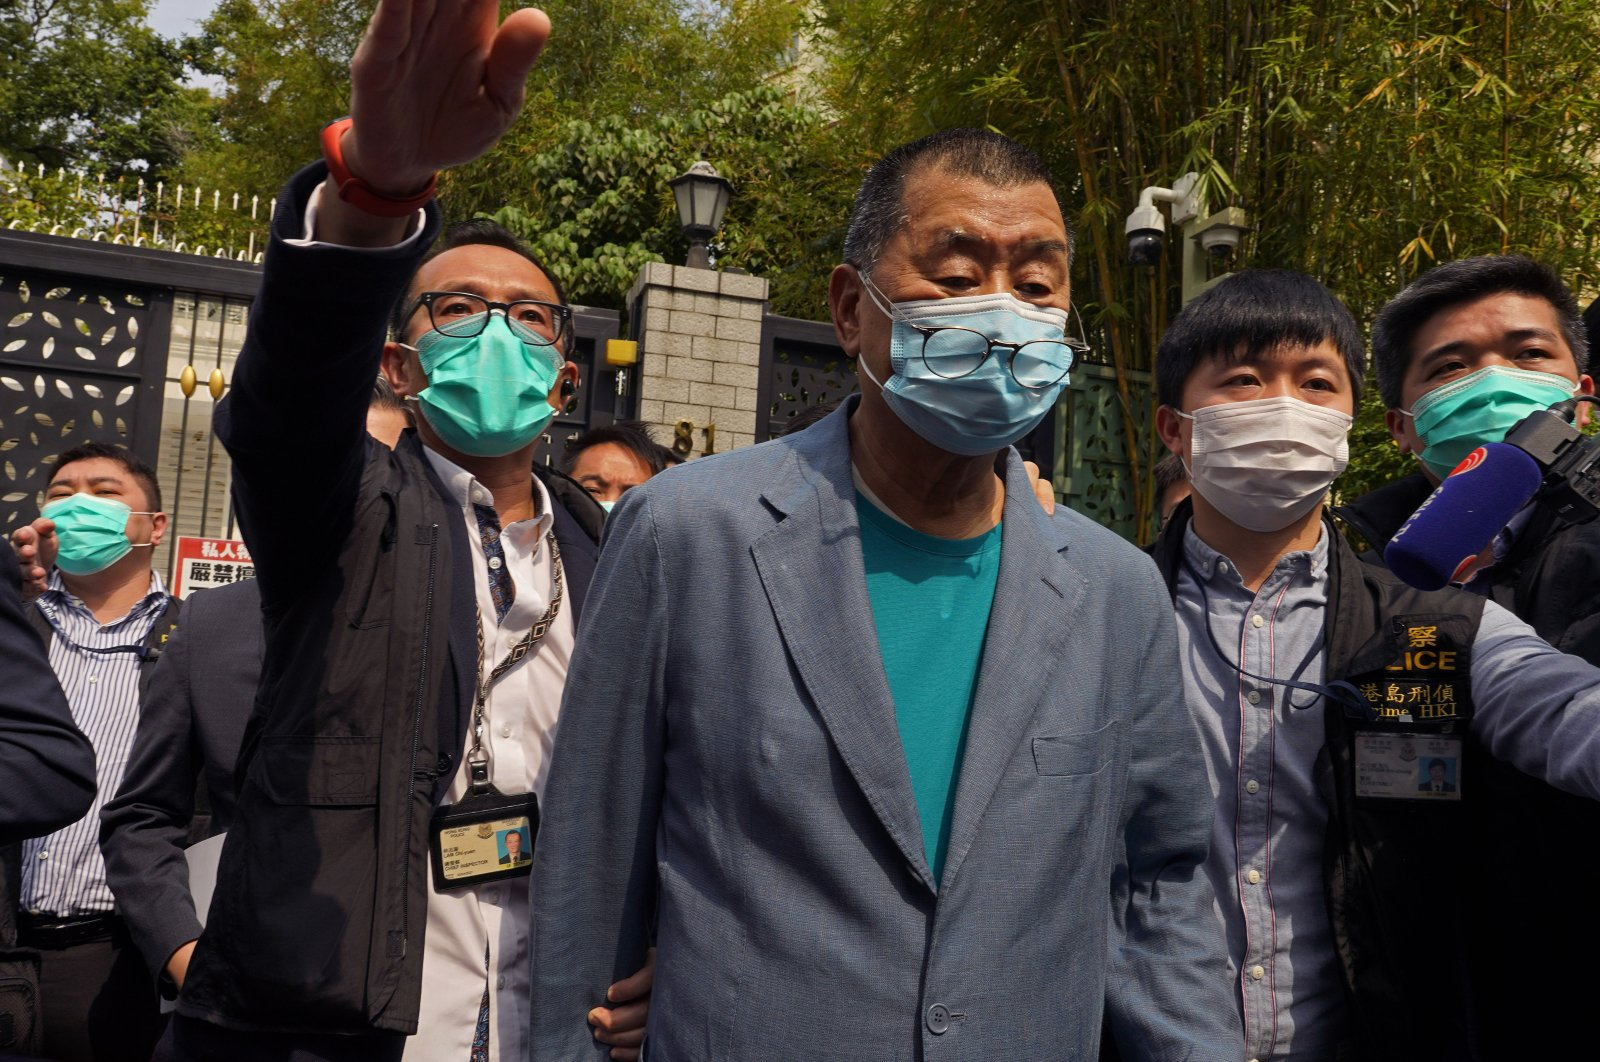 Hong Kong media tycoon Jimmy Lai, center, who founded local newspaper Apple Daily, is arrested by police officers at his home in Hong Kong, Saturday, April 18, 2020. (AP Photo)